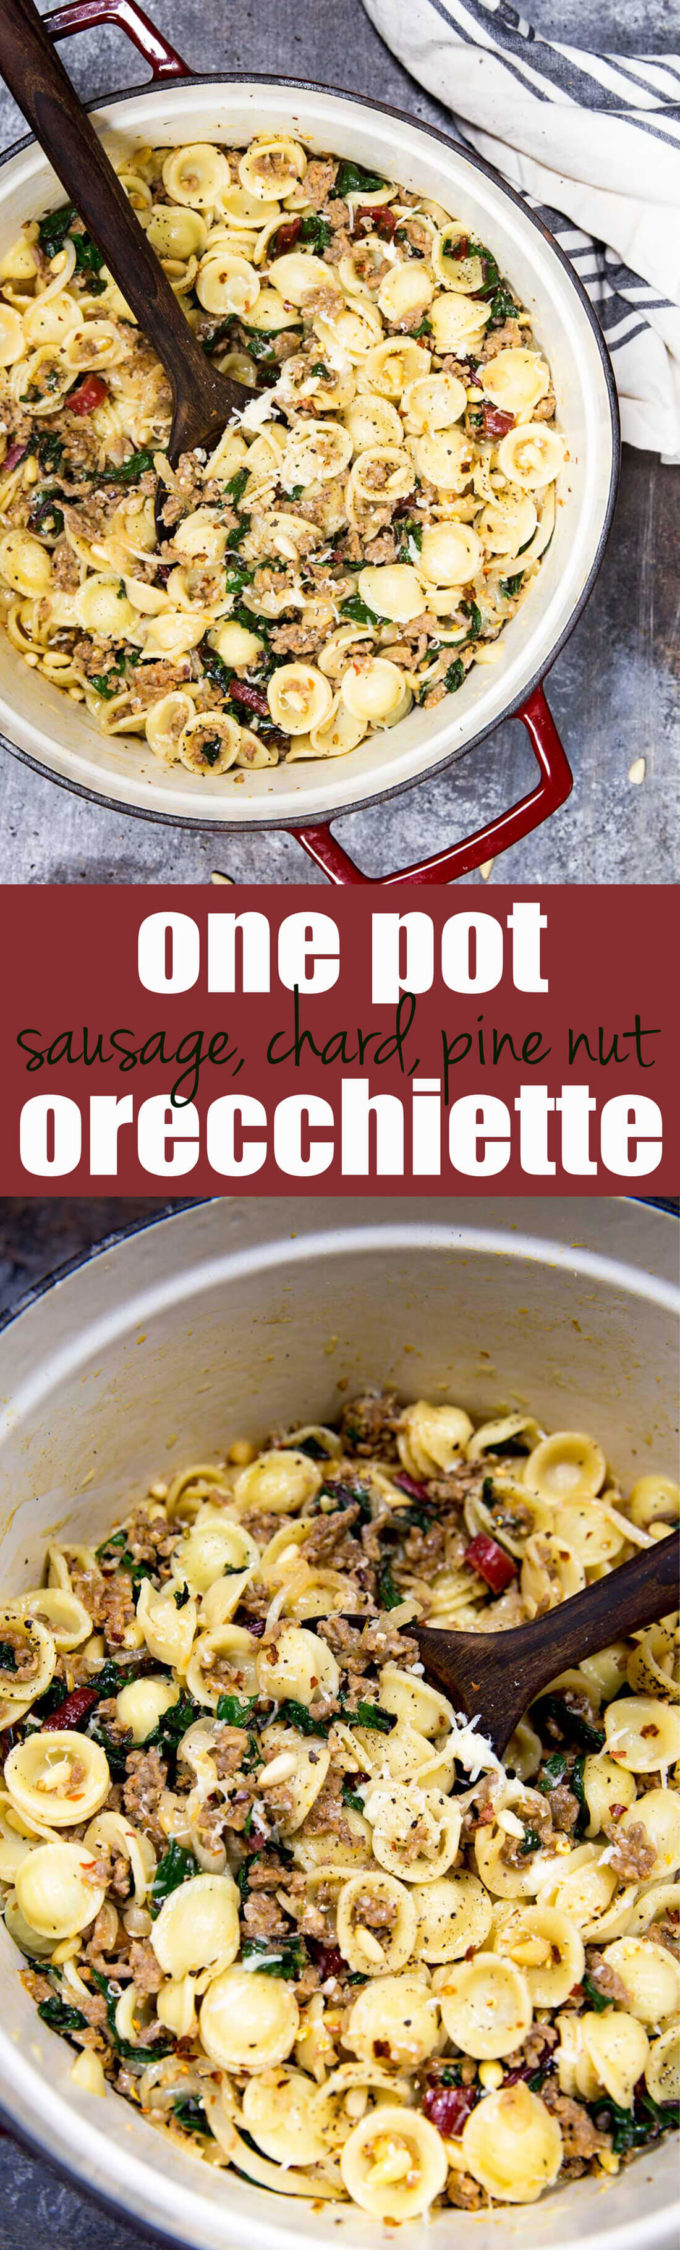 One pan sausage, chard, and pine nut orrecchiette